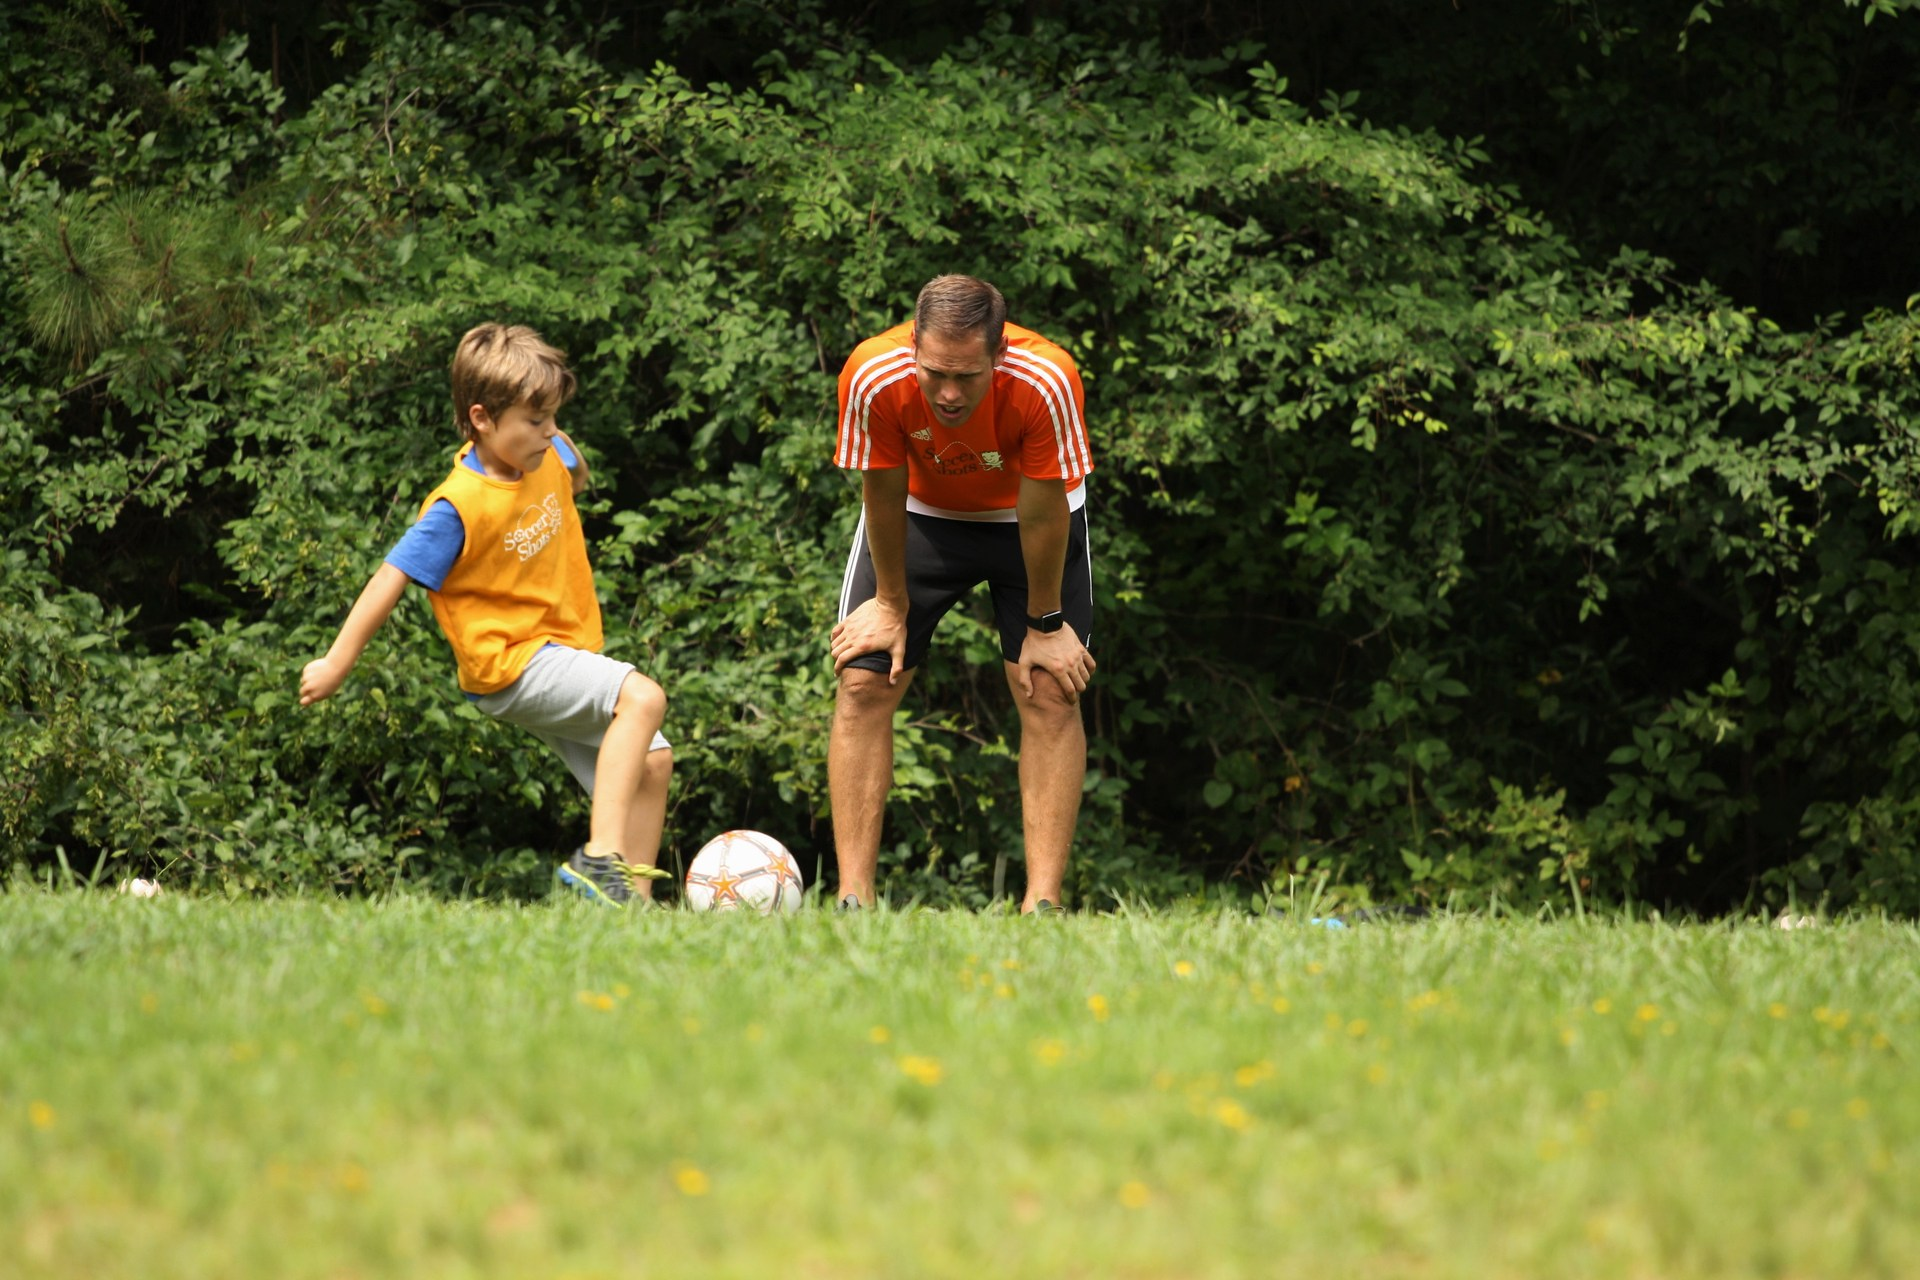 Boy and coach play soccer in green field